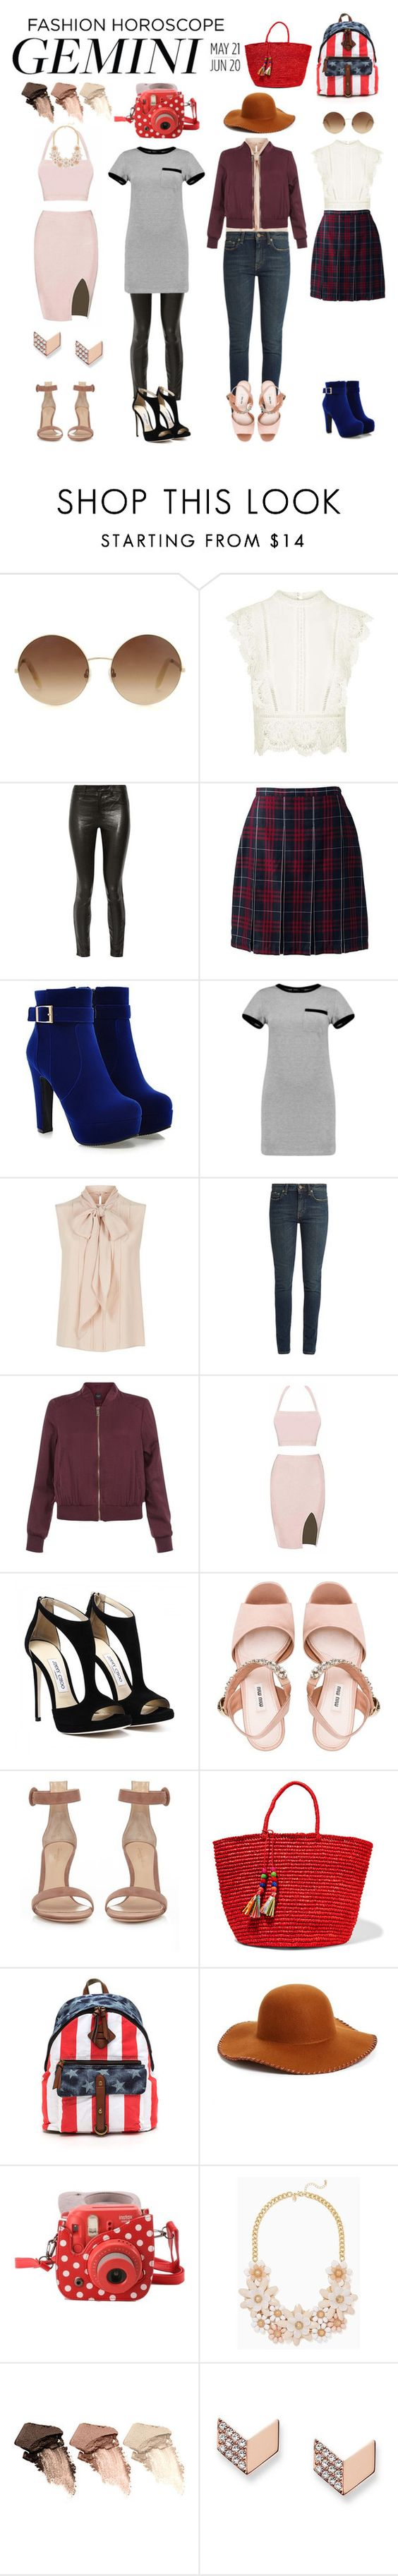 """""""gemini"""" by jammis7 ❤ liked on Polyvore featuring Victoria Beckham, Topshop, J Brand, Lands' End, Boohoo, MaxMara, Yves Saint Laurent, New Look, Miu Miu and Gianvito Rossi"""